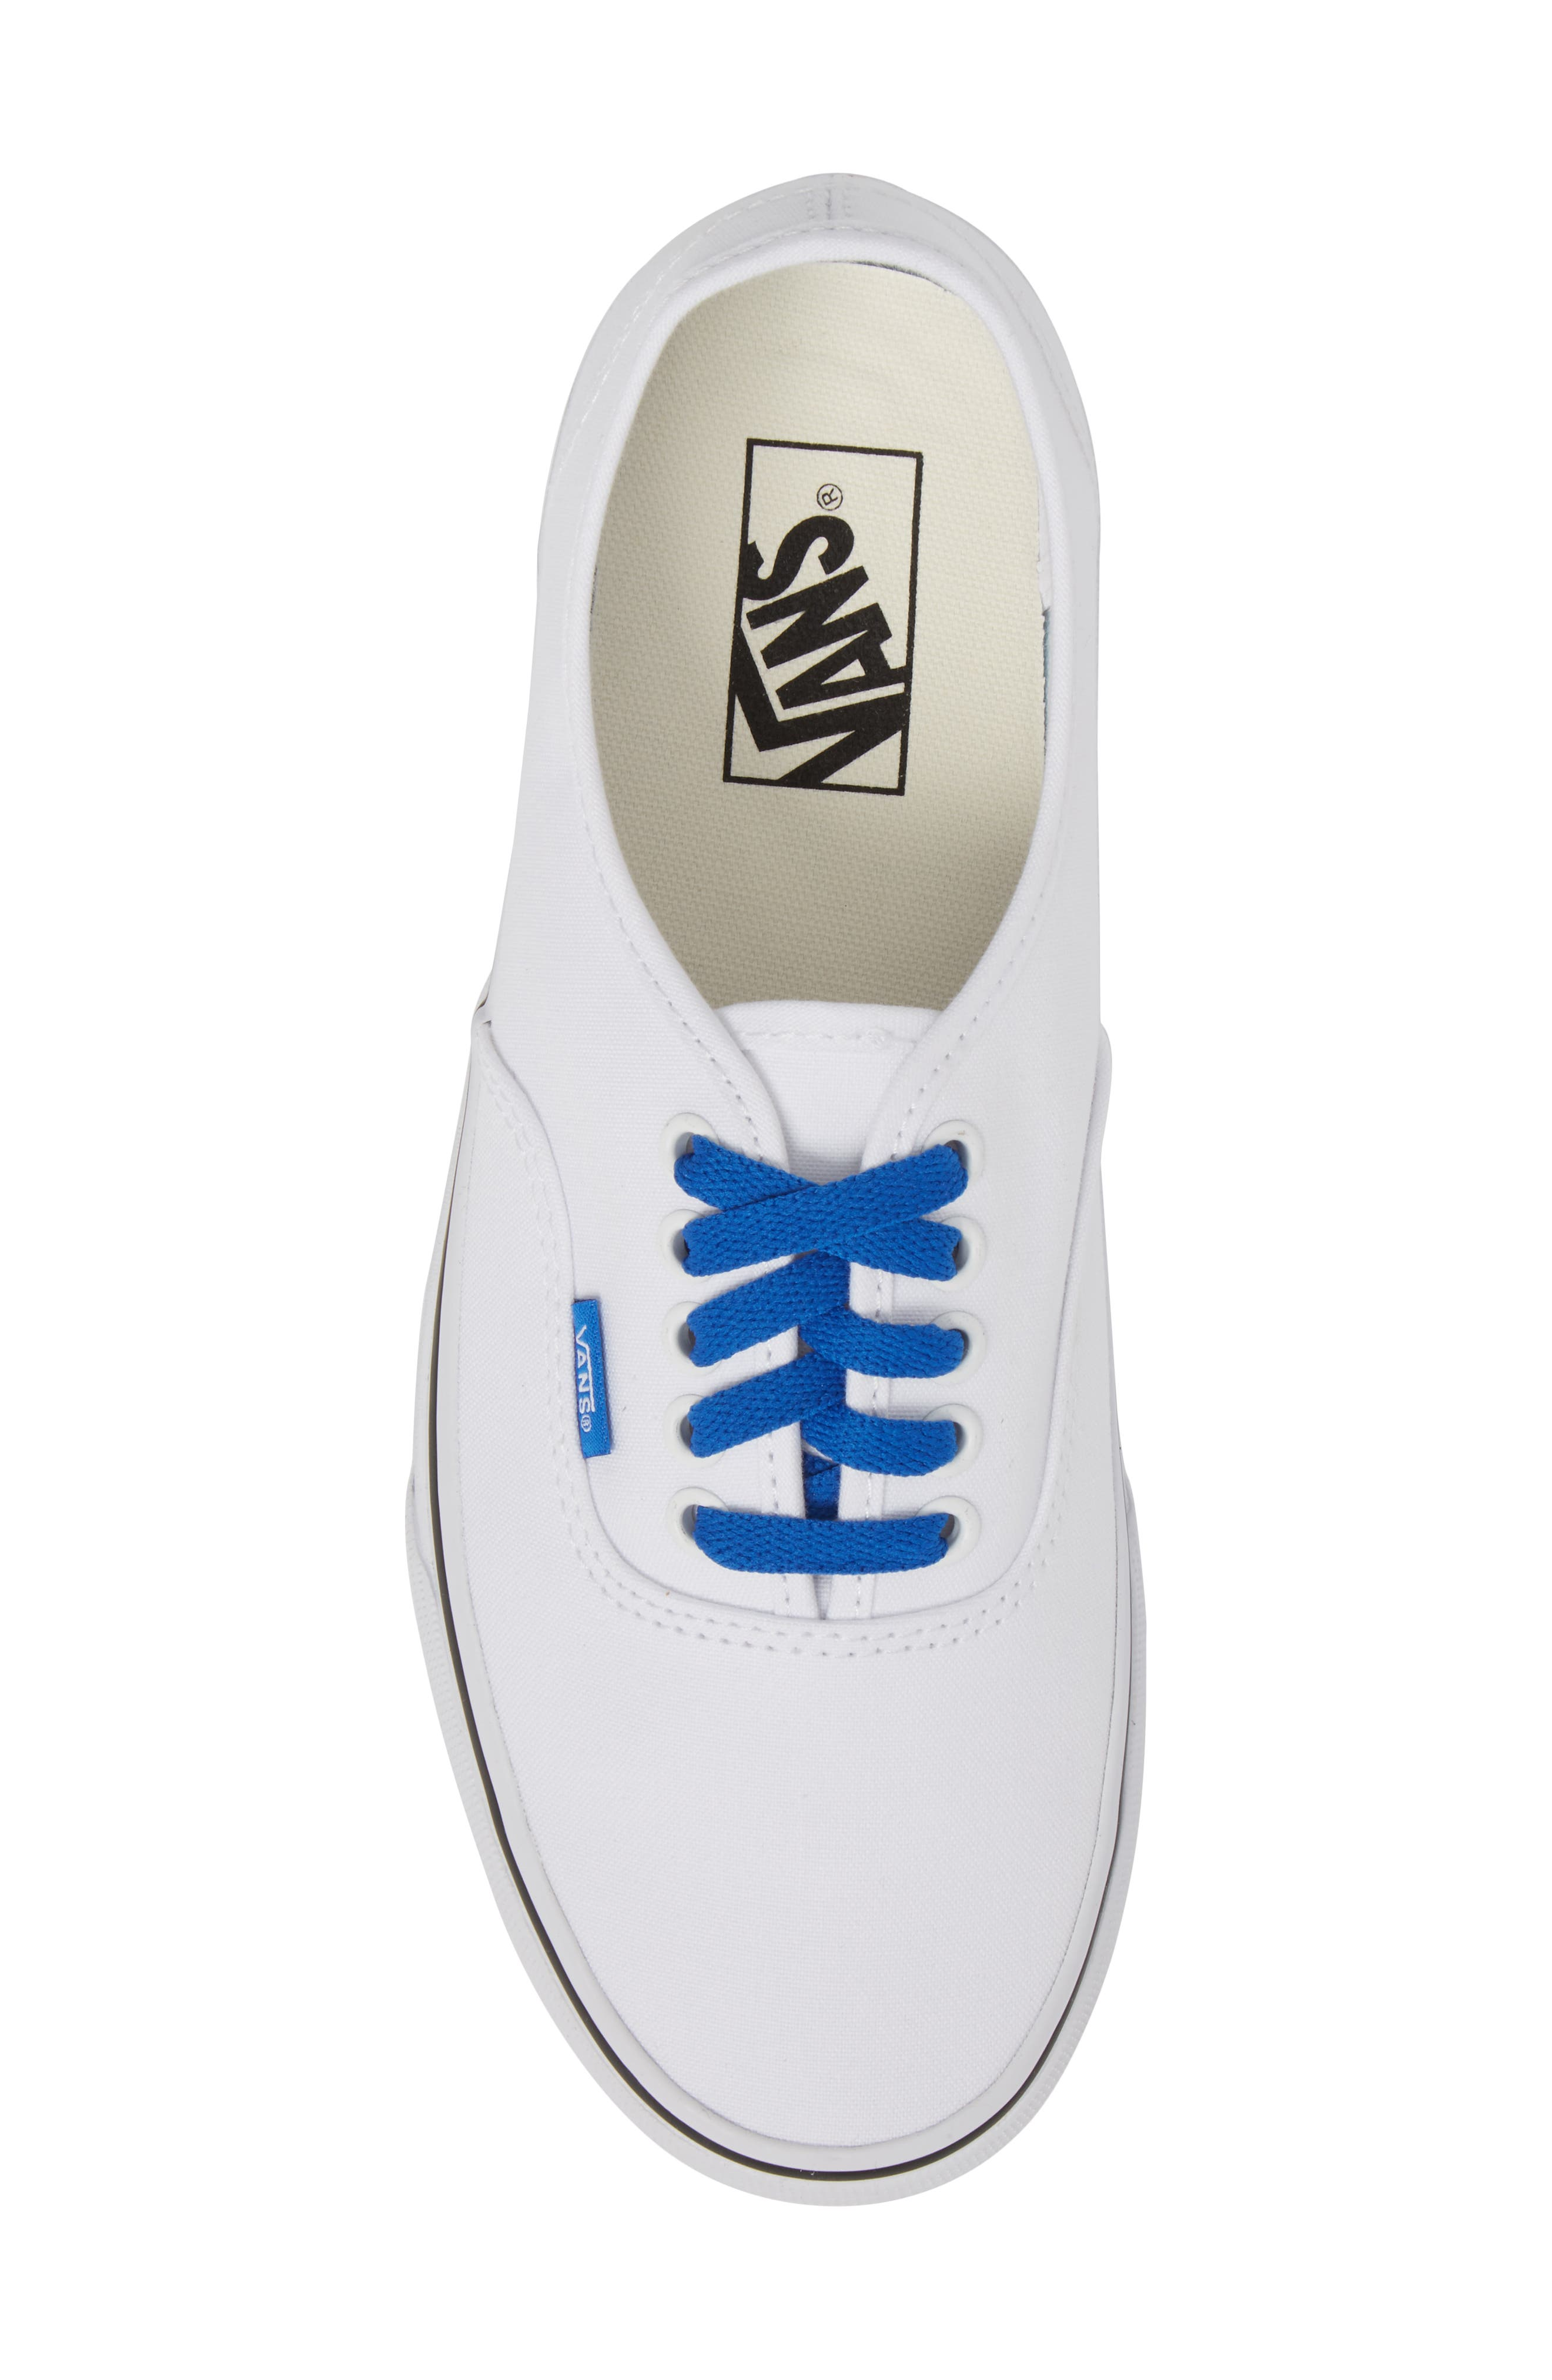 Authentic Sketch Sidewall Sneaker,                             Alternate thumbnail 5, color,                             True White/ Victoria Blue